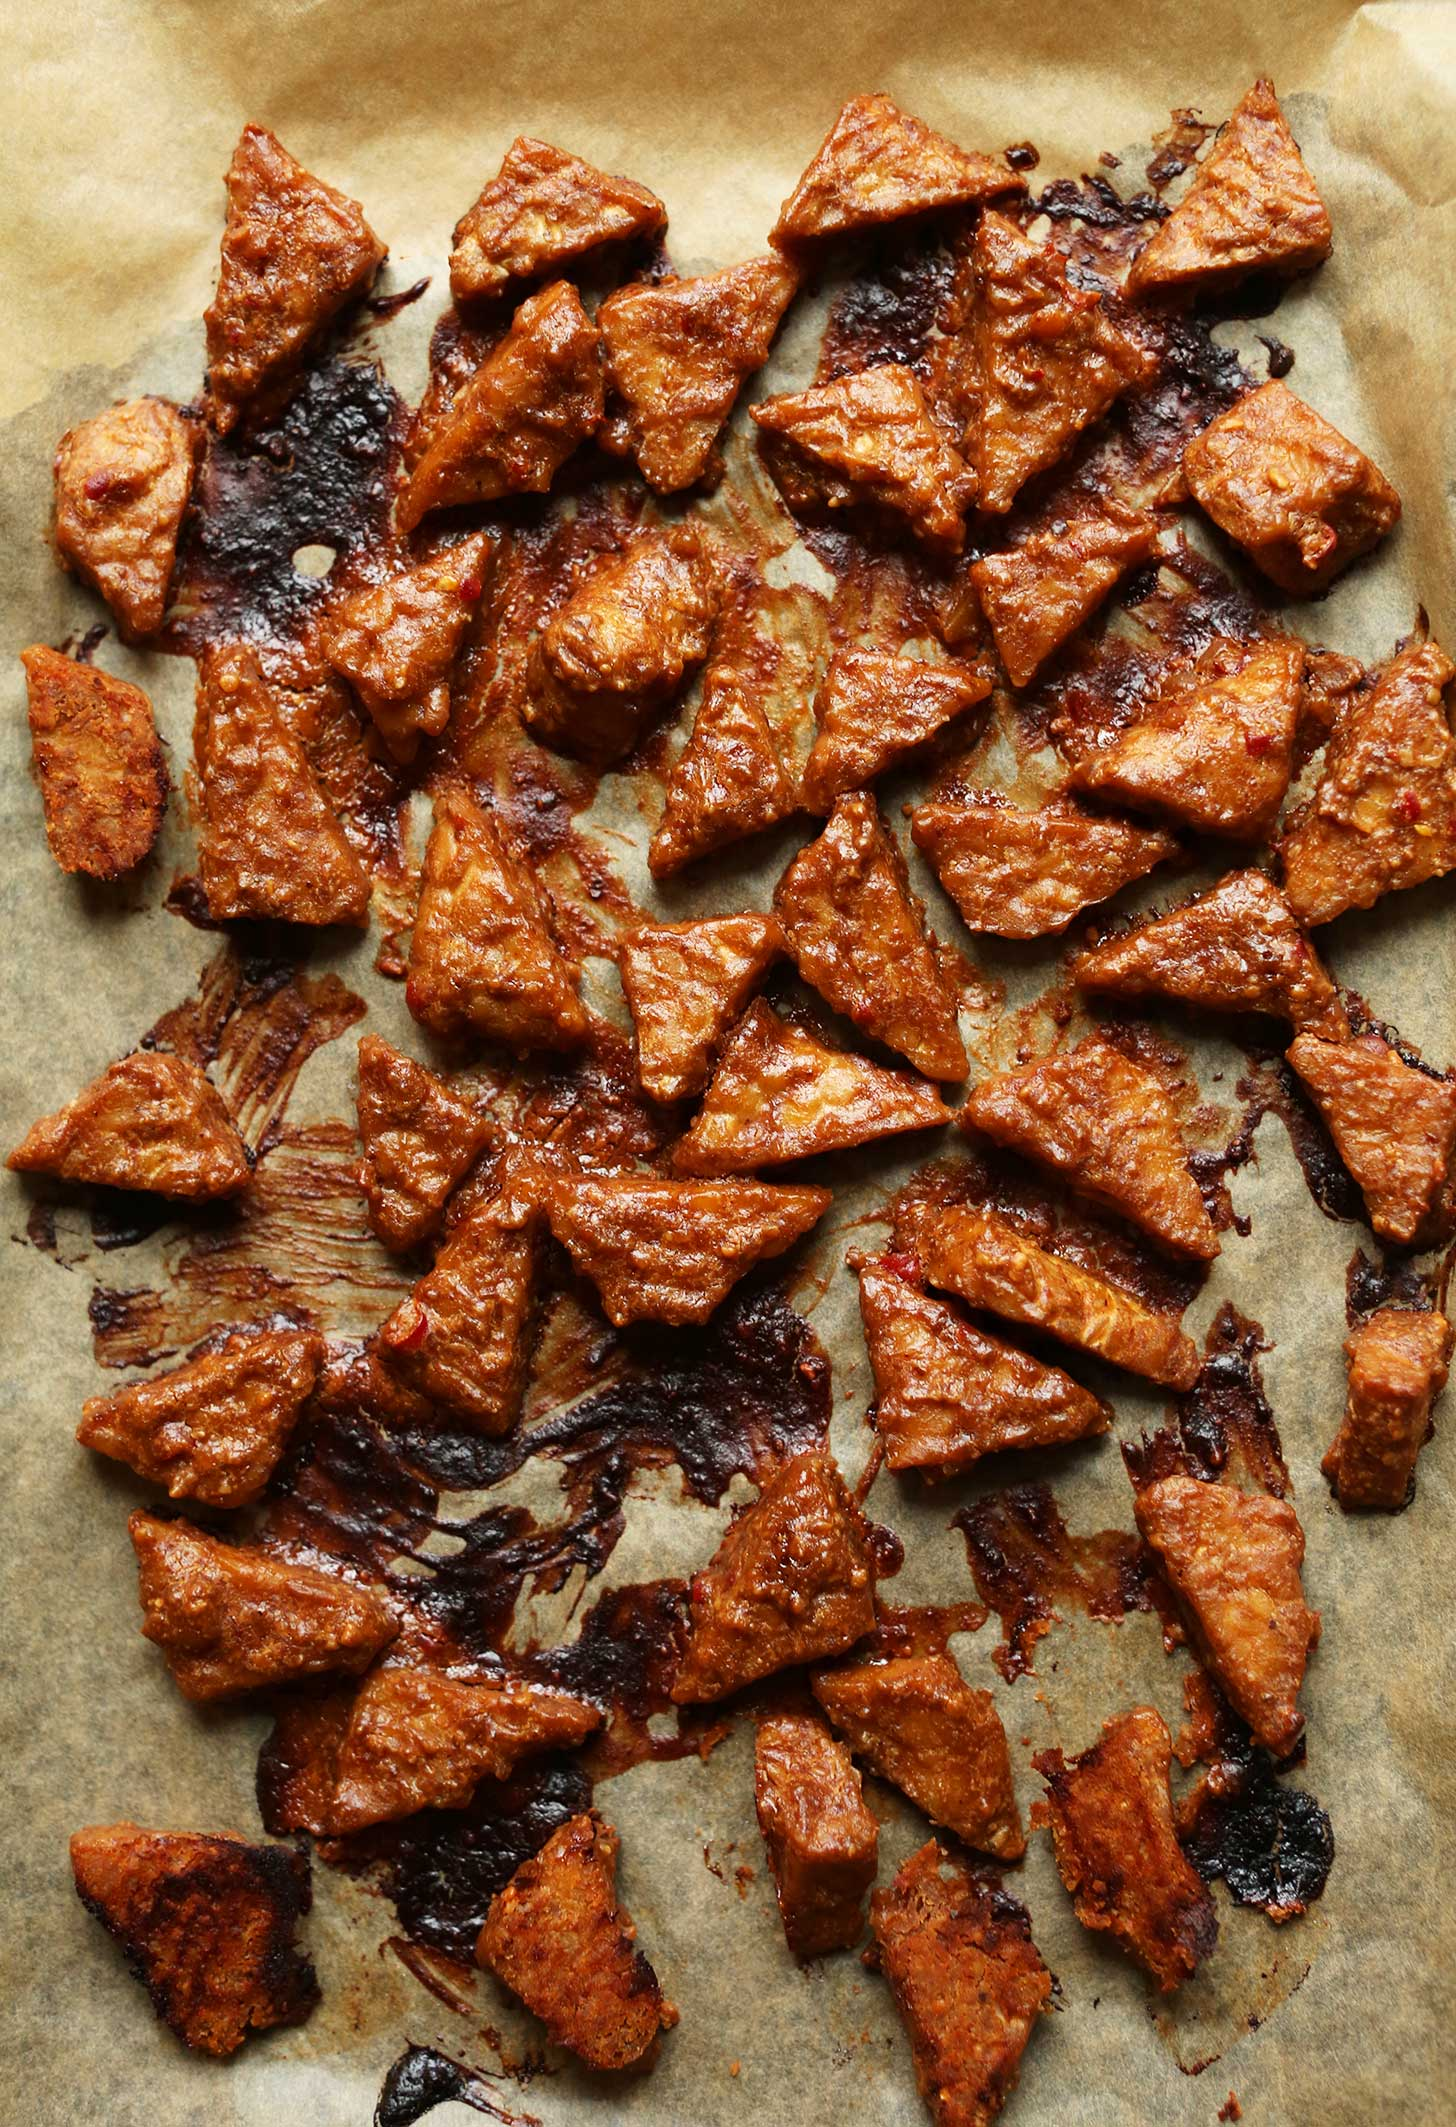 Parchment-lined baking sheet filled with freshly baked Peanut Tempeh